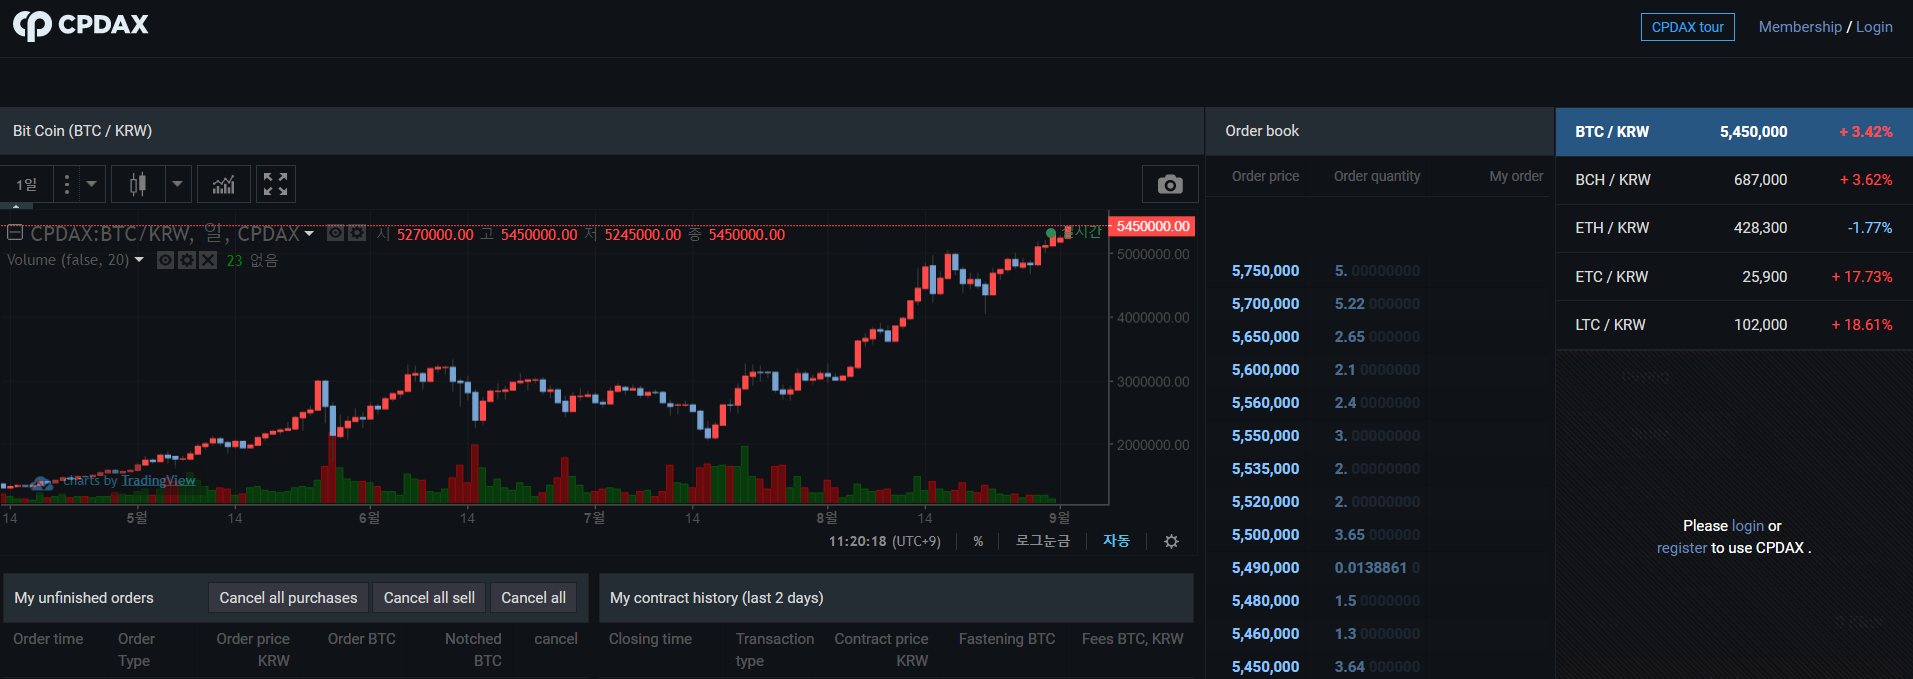 South Korea's Coinplug Launches New Exchange and Begins Trading Bitcoin Cash